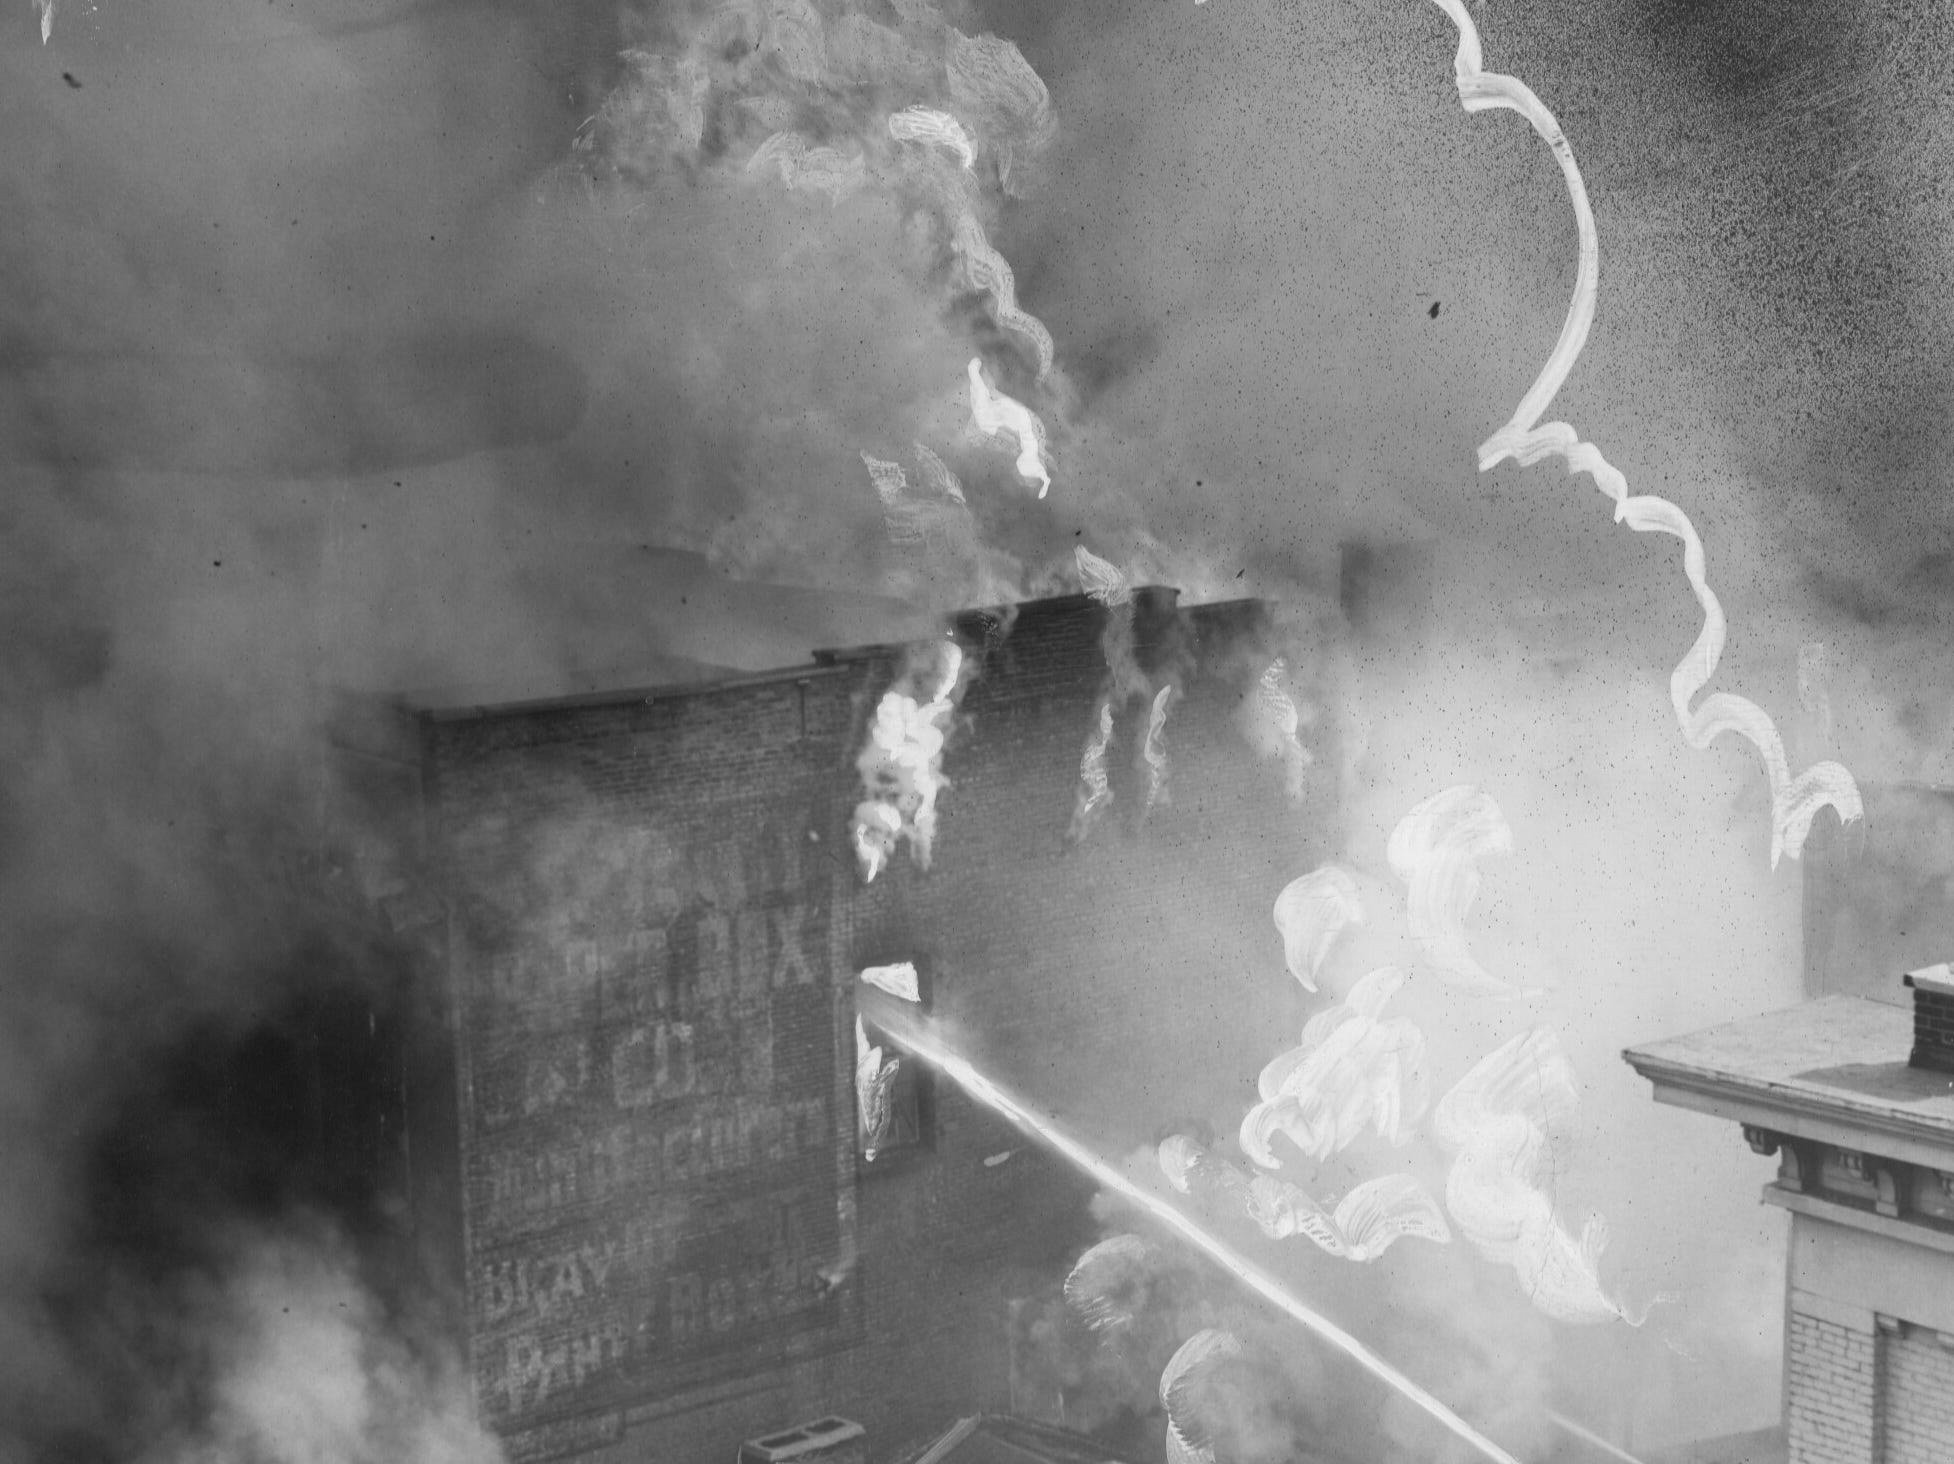 A tower of flames roar up from the Kentucky Paper Box Co. and the Finger Box Co. as firemen on near-by roof pour water into windows. 